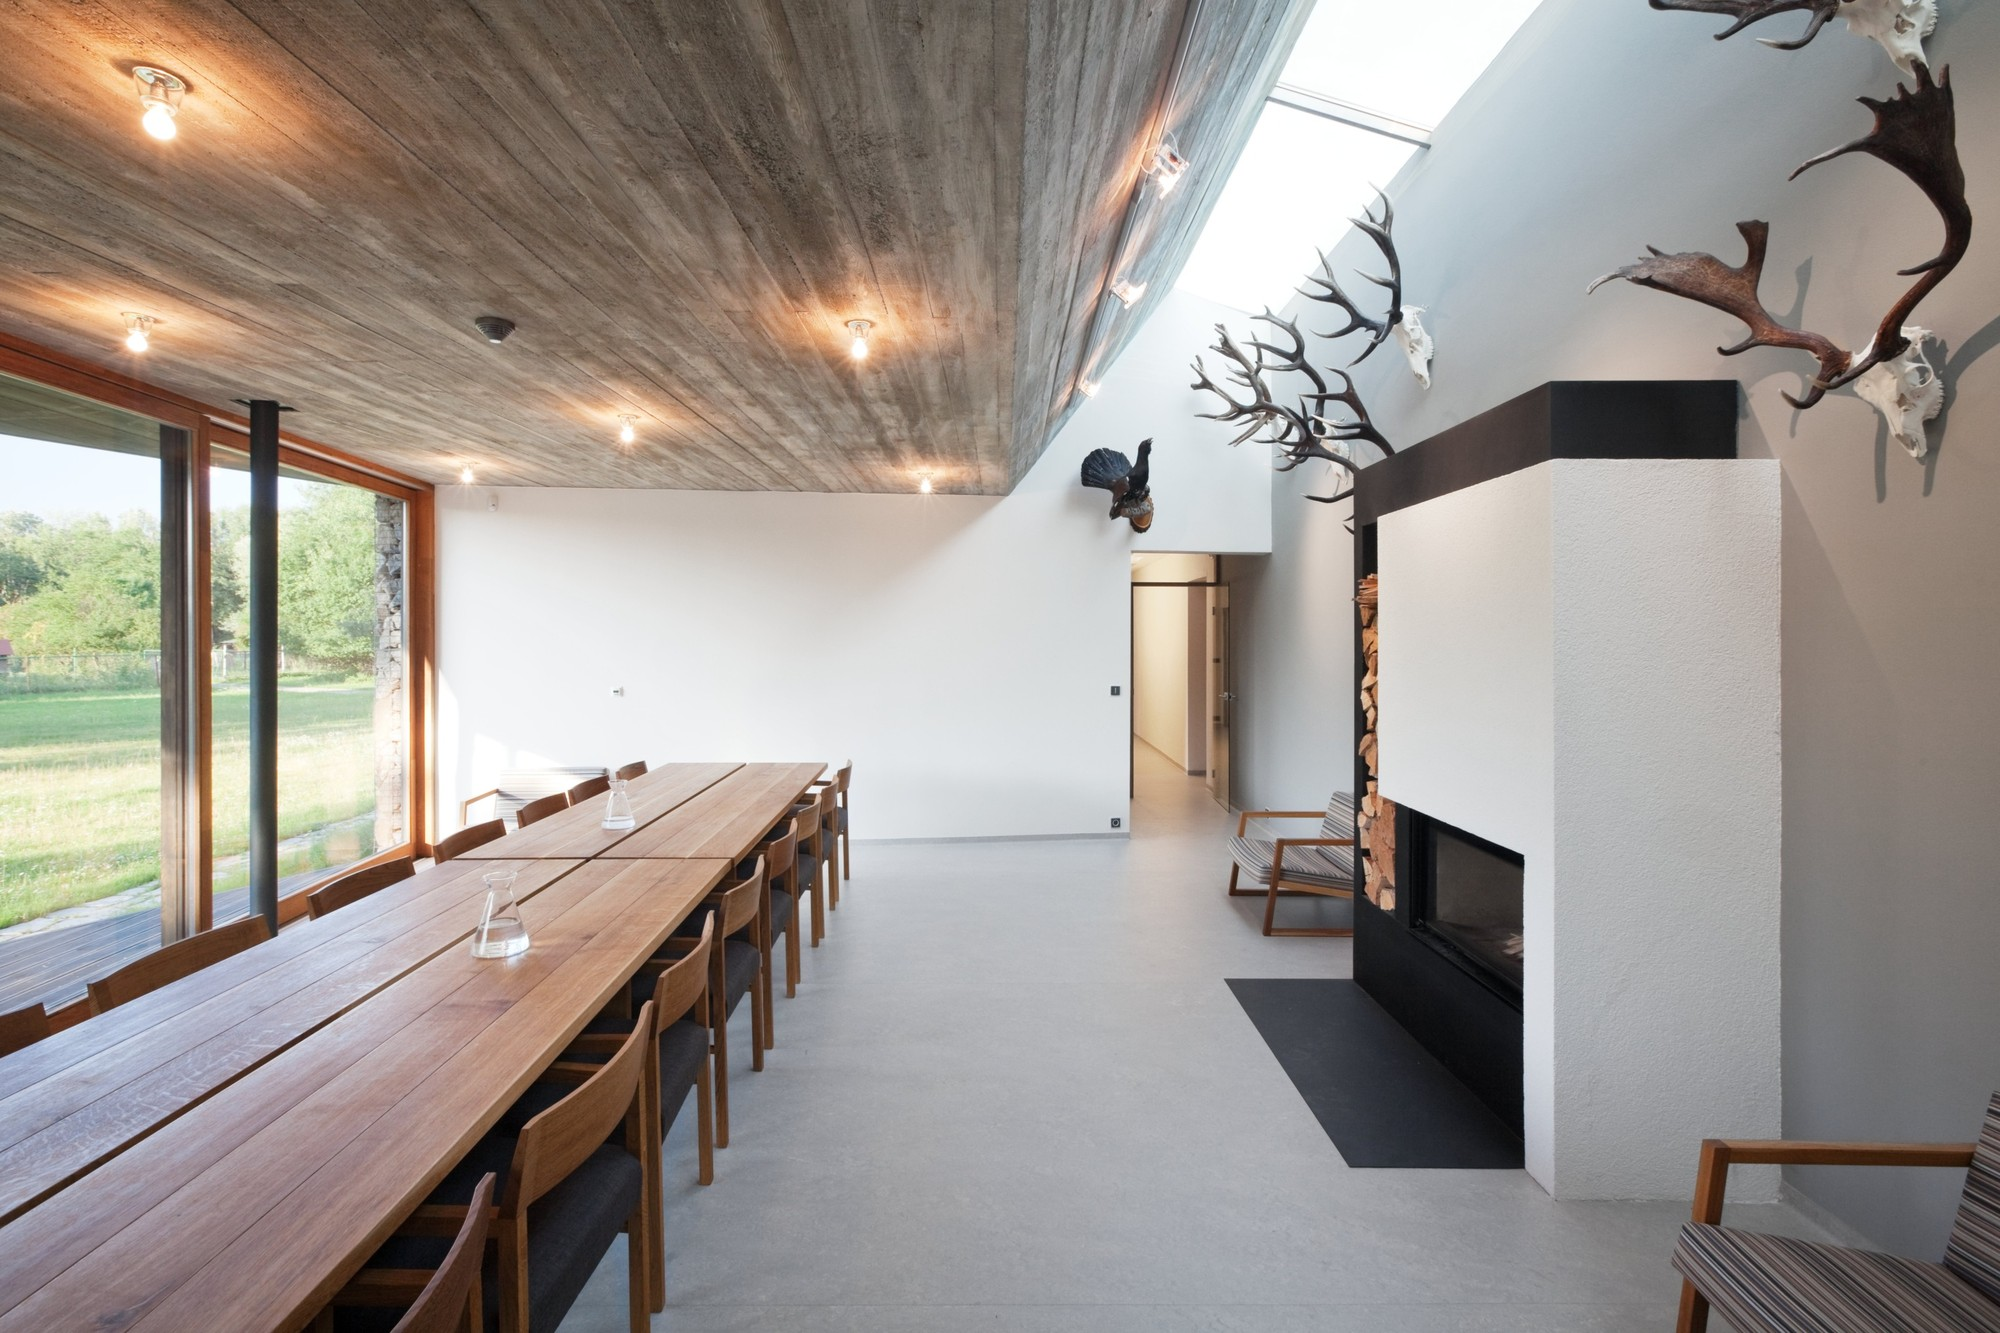 Hunting Lodge Basarch Archdaily